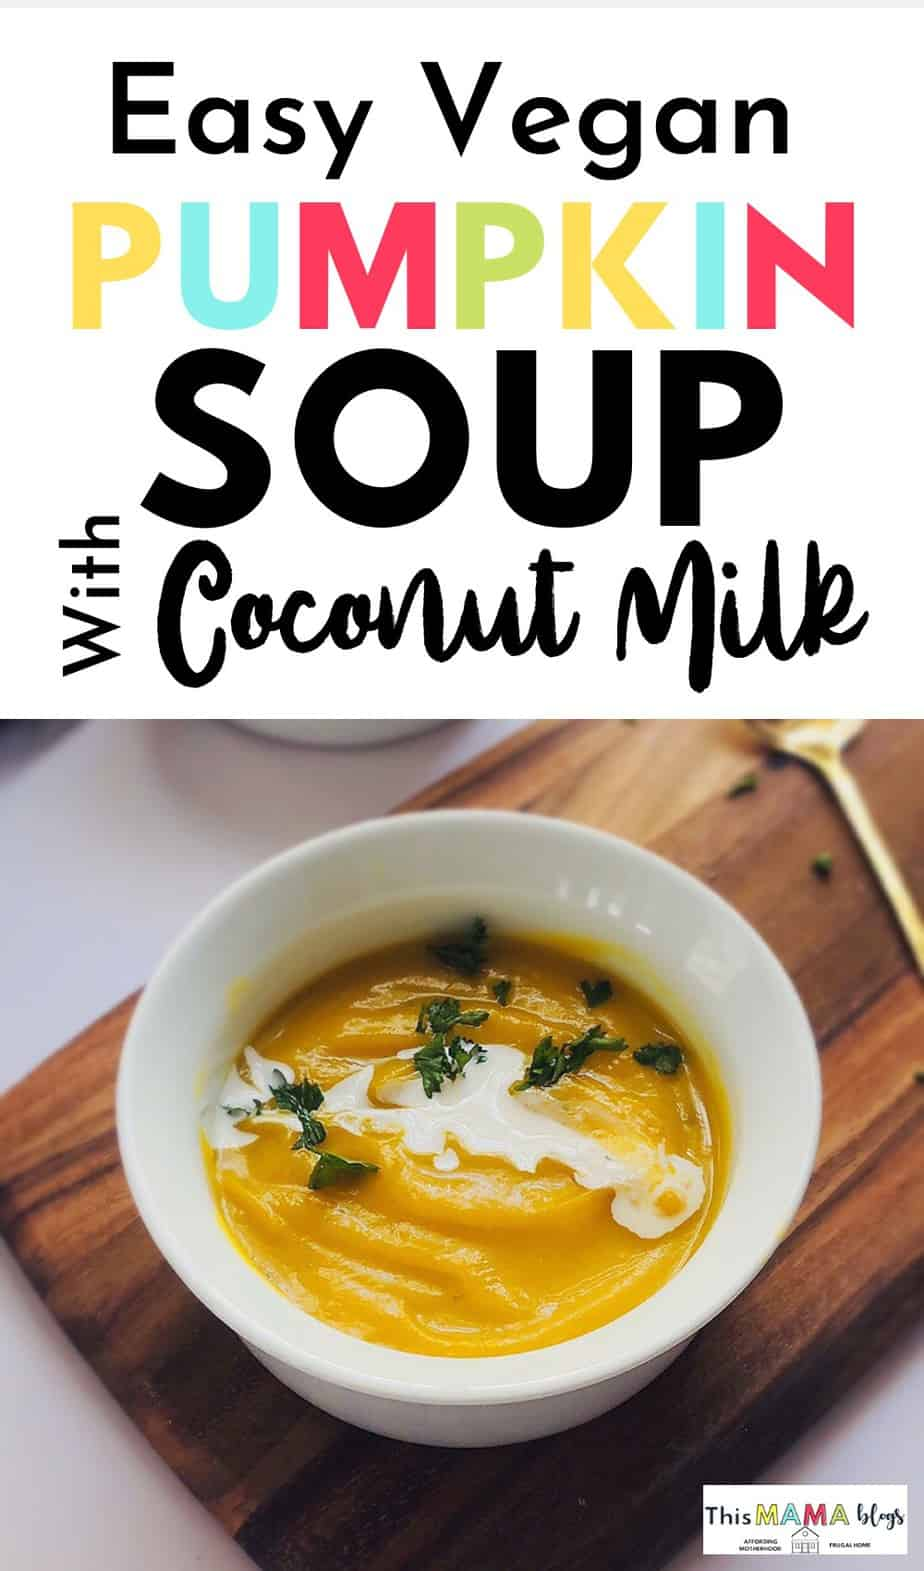 This vegan coconut ginger pumpkin soup is the ultimate warmer for when the weather starts cooling down. It's creamy and silky with a bit of spice, and features a slightly sweet and nutty flavor that even kids will love! Costing only $0.80 or less per serving, this soup makes a great addition to your budget vegan recipes for fall and winter!